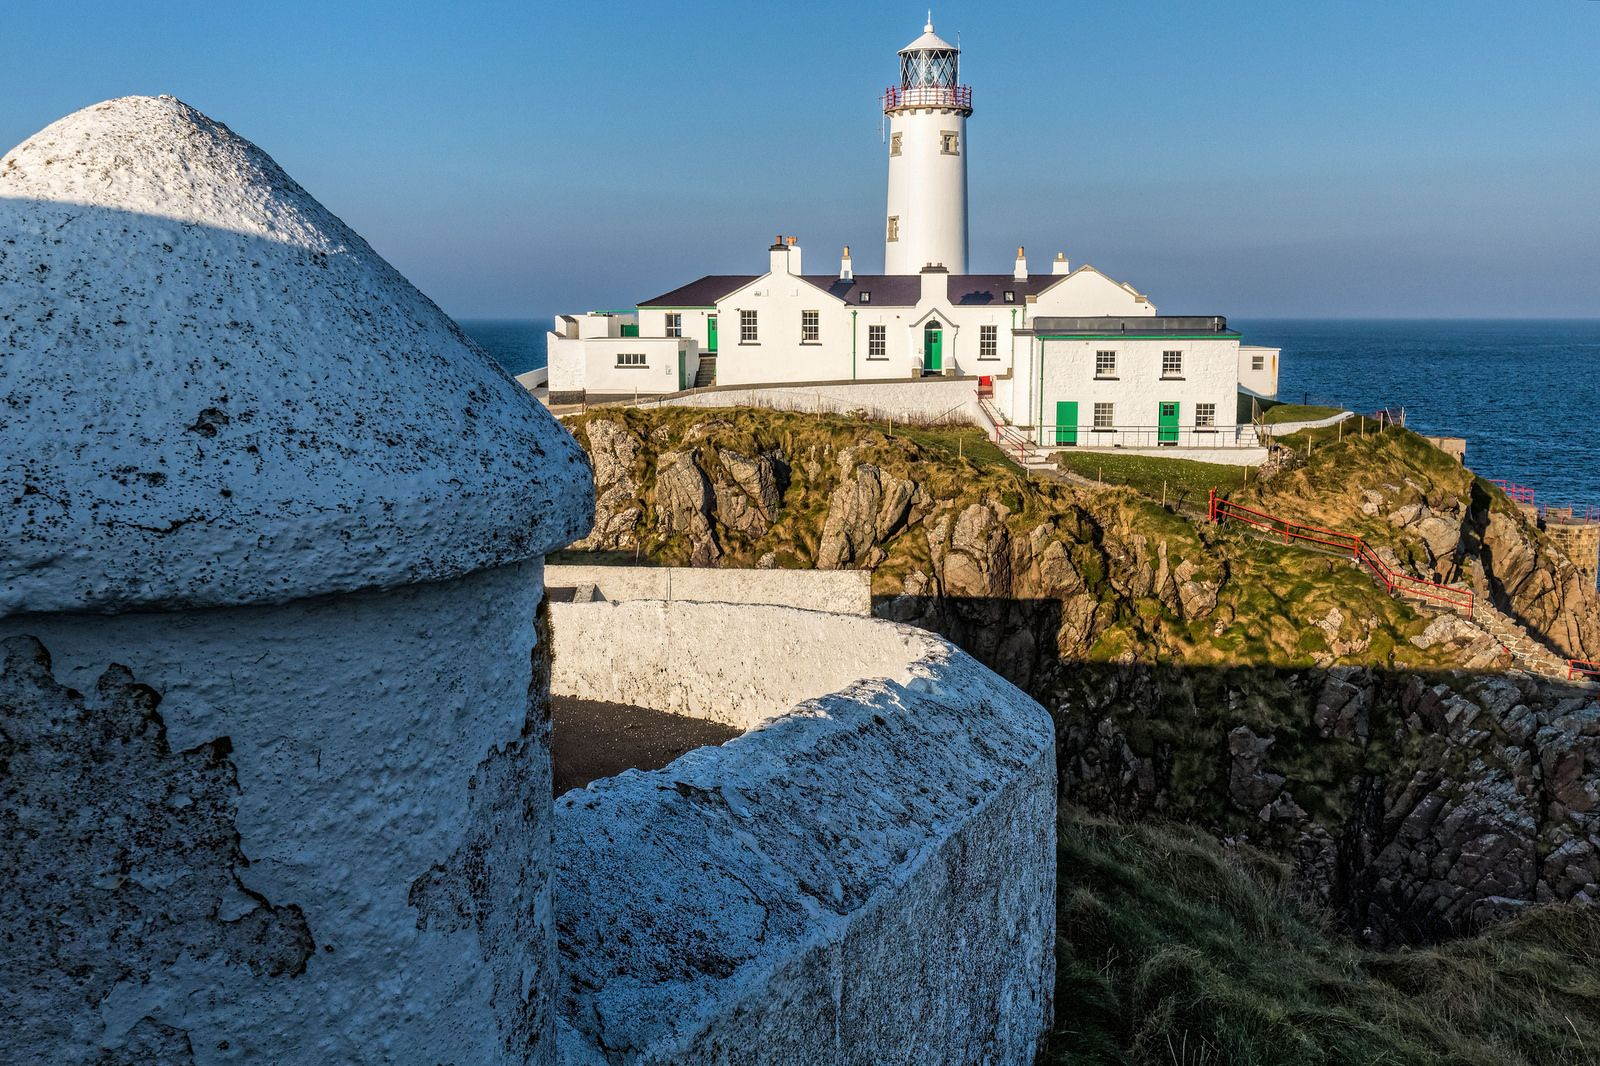 https://flic.kr/p/G9wgDR   Pointed   Fanad Head, Donegal _________________  James 2:10   For whosoever shall keep the whole law, and yet offend in one point, he is guilty of all.   _________________  [Explore - 11 May 2016]